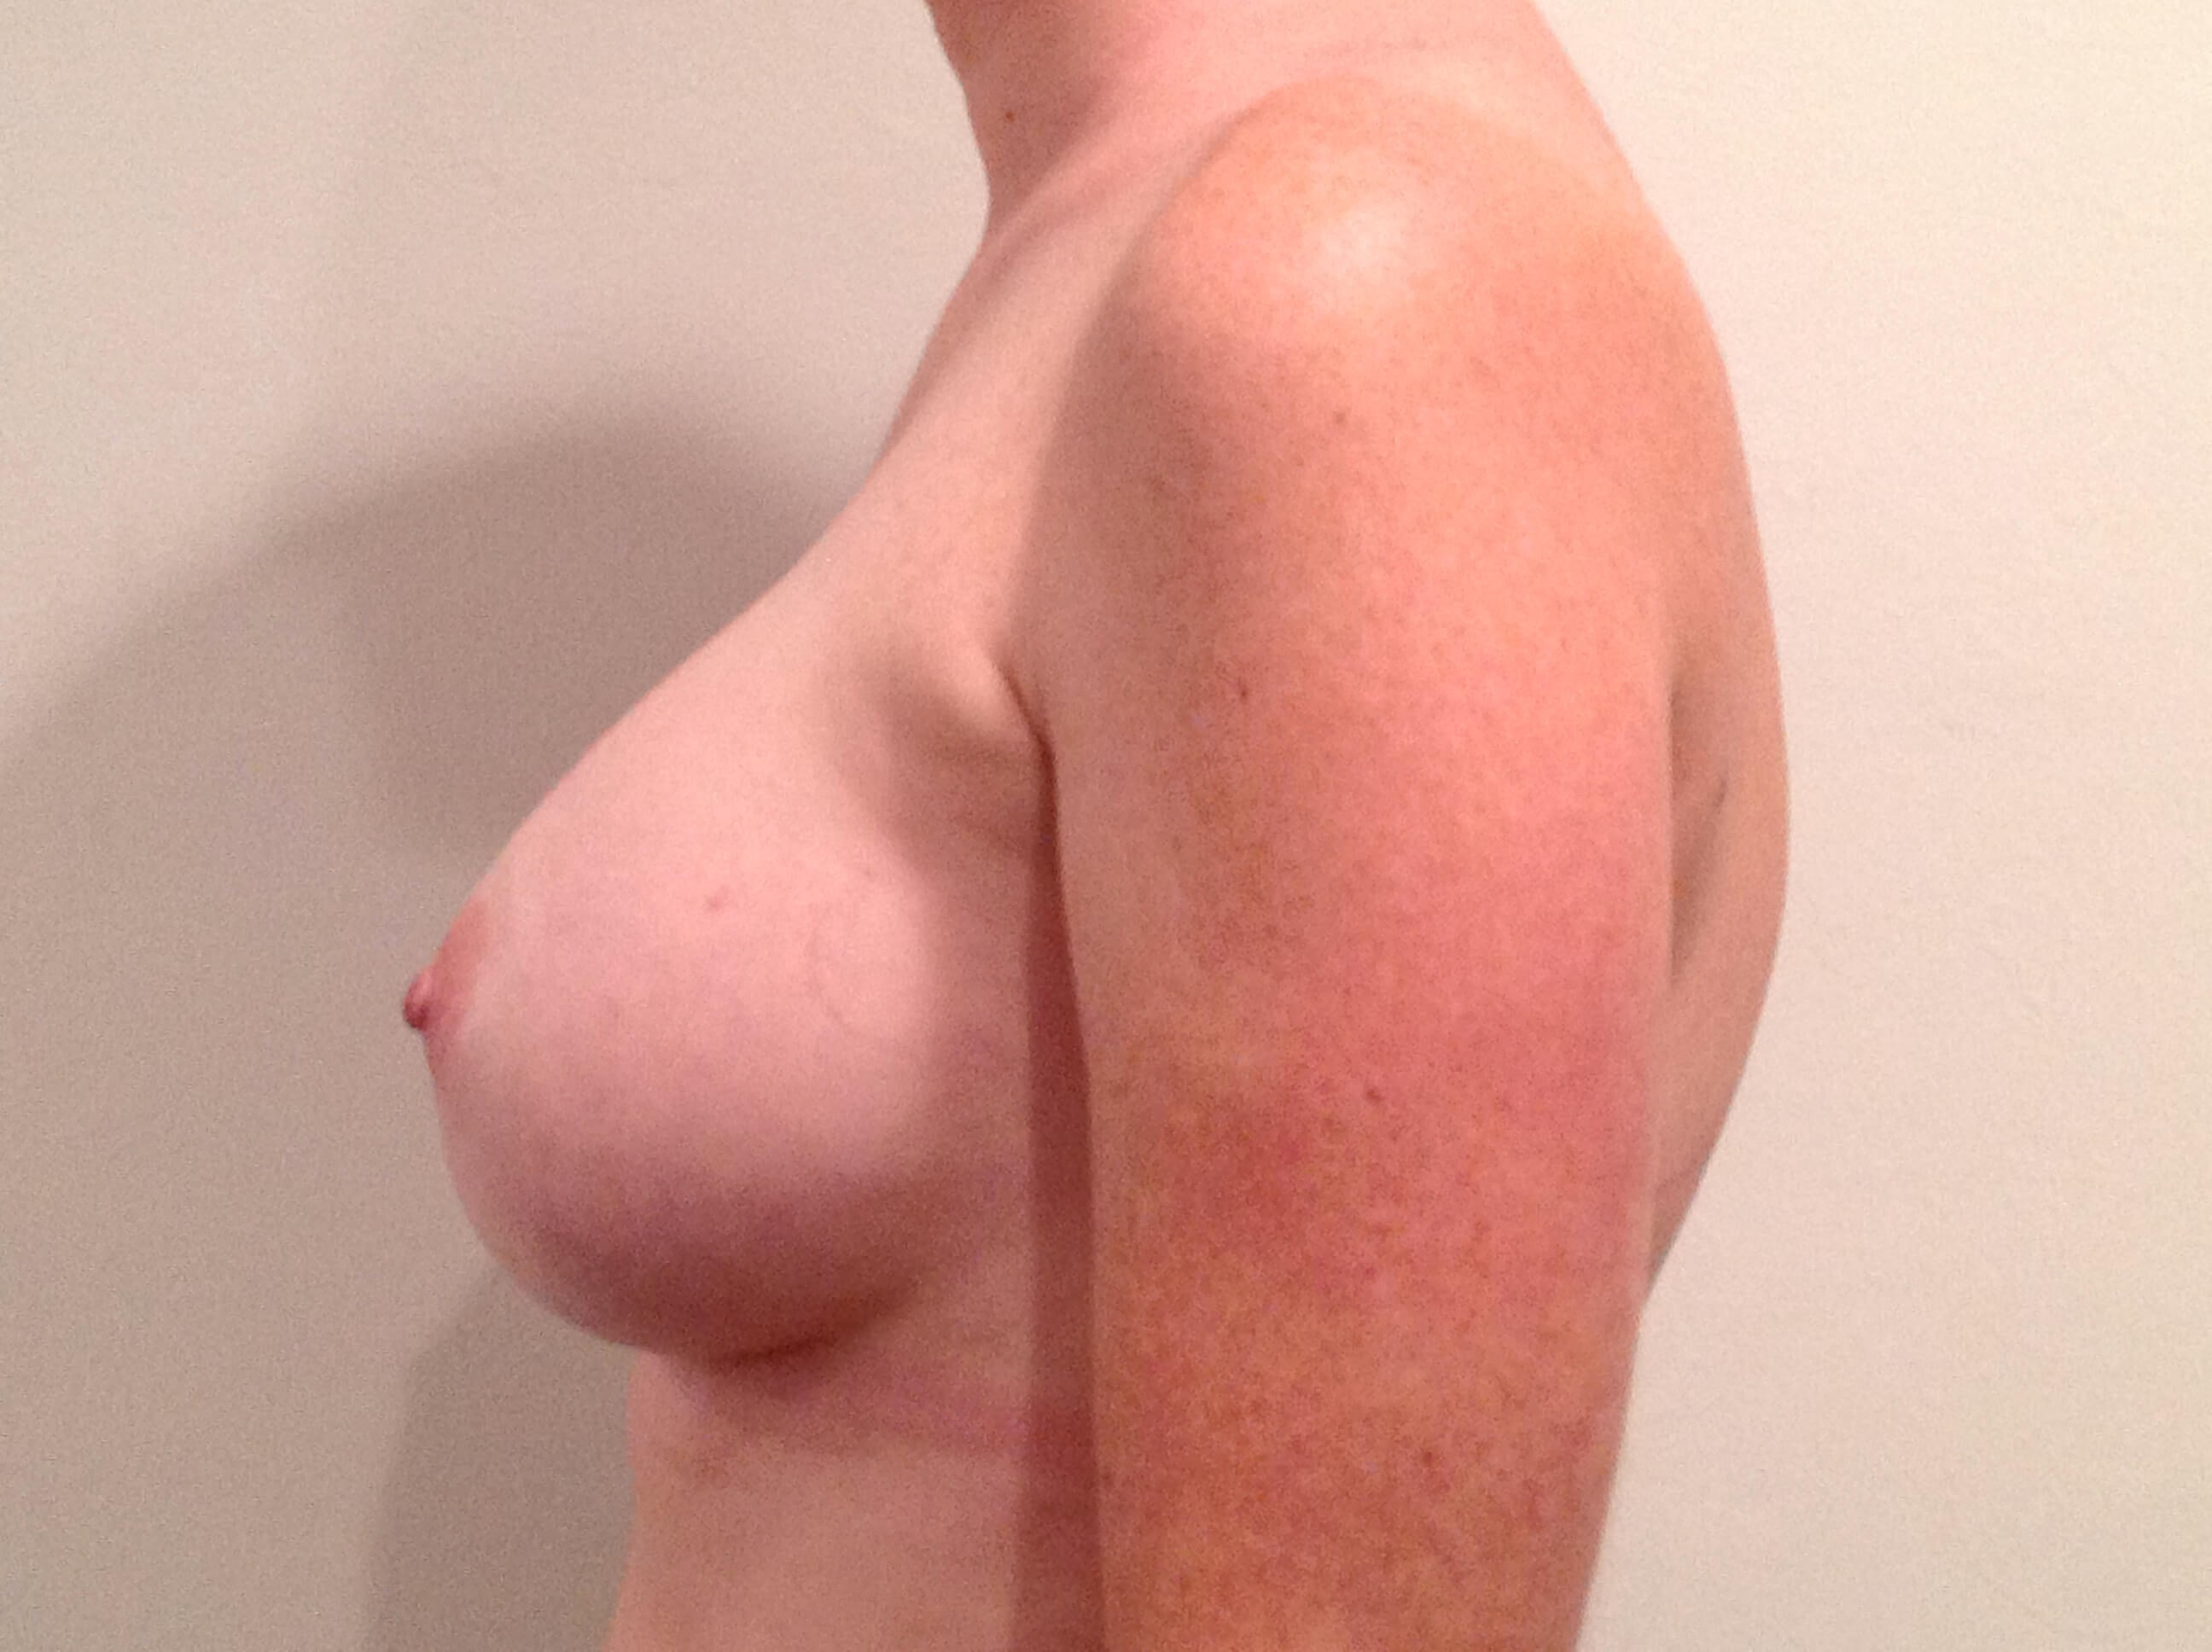 Breast Augmentation Side View After Saline Implants